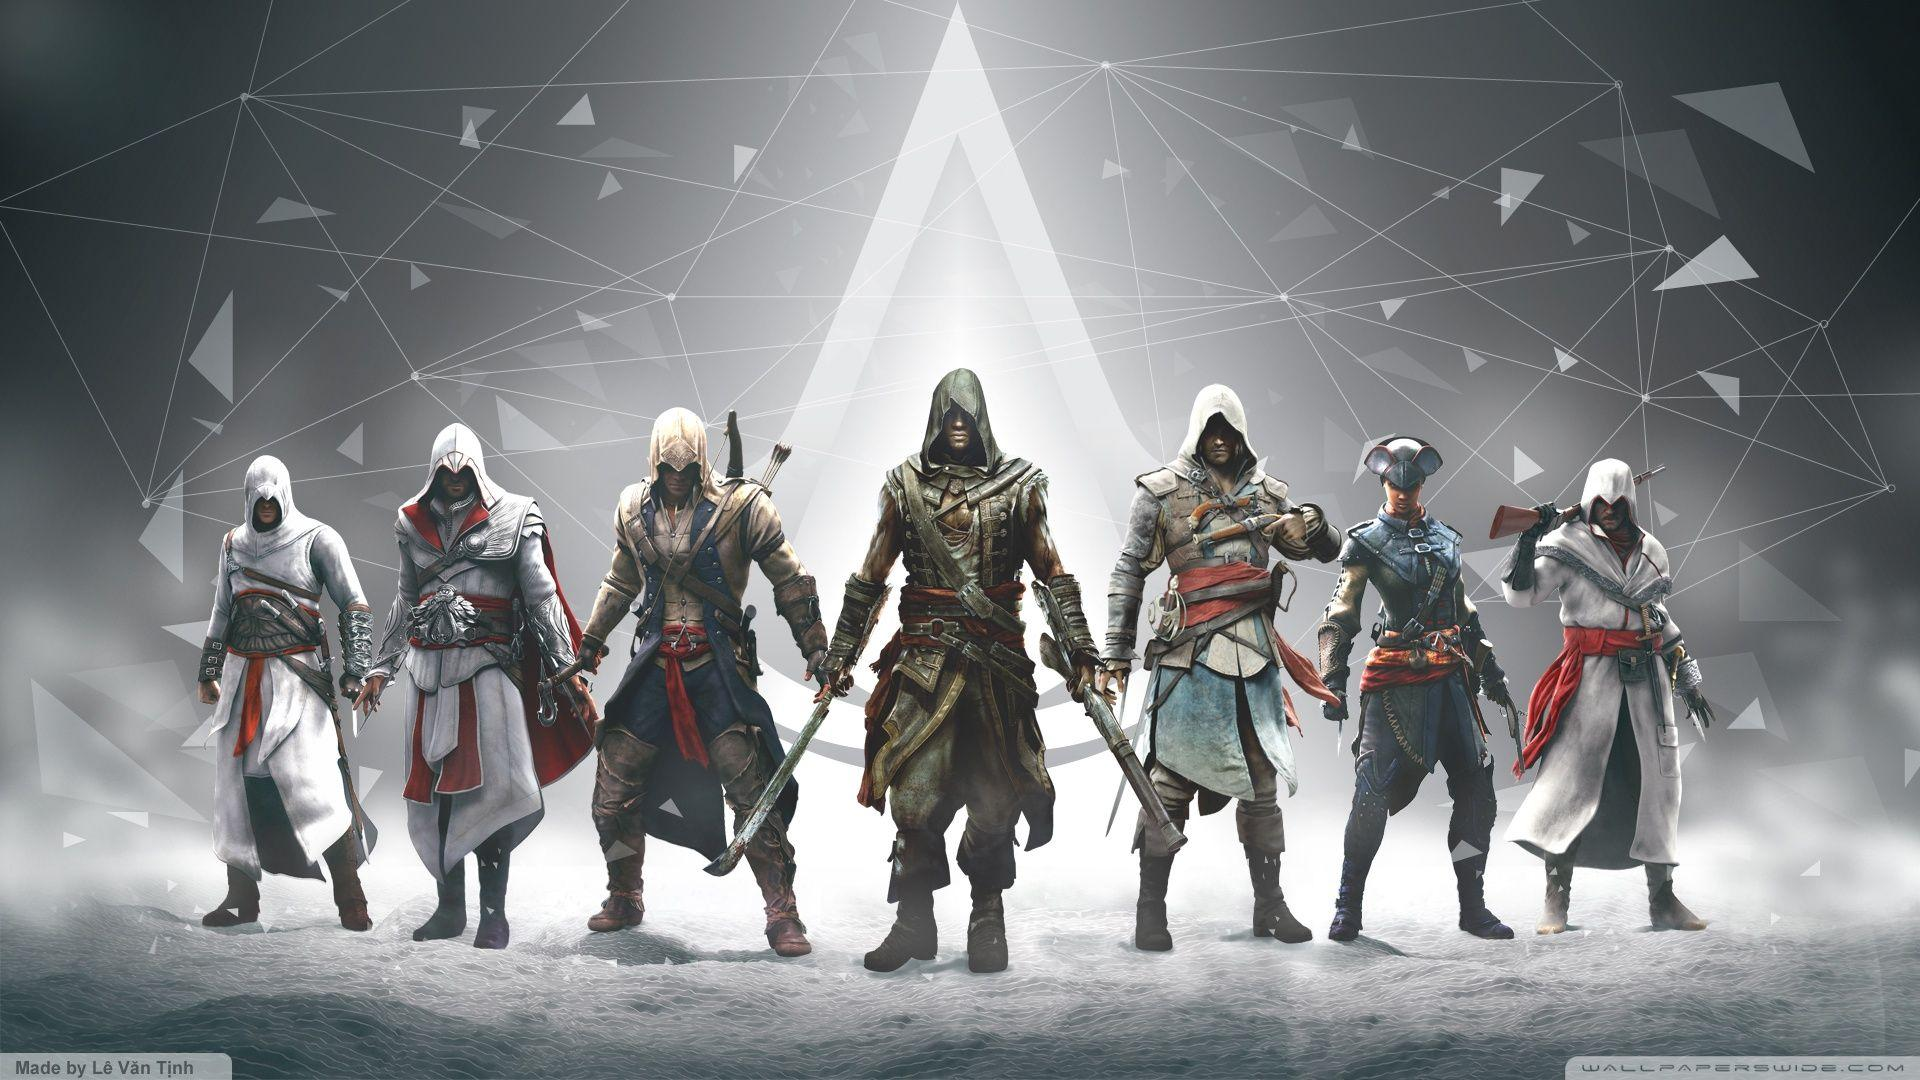 wallpaperswide.com/download/assassins_creed_all_ch...